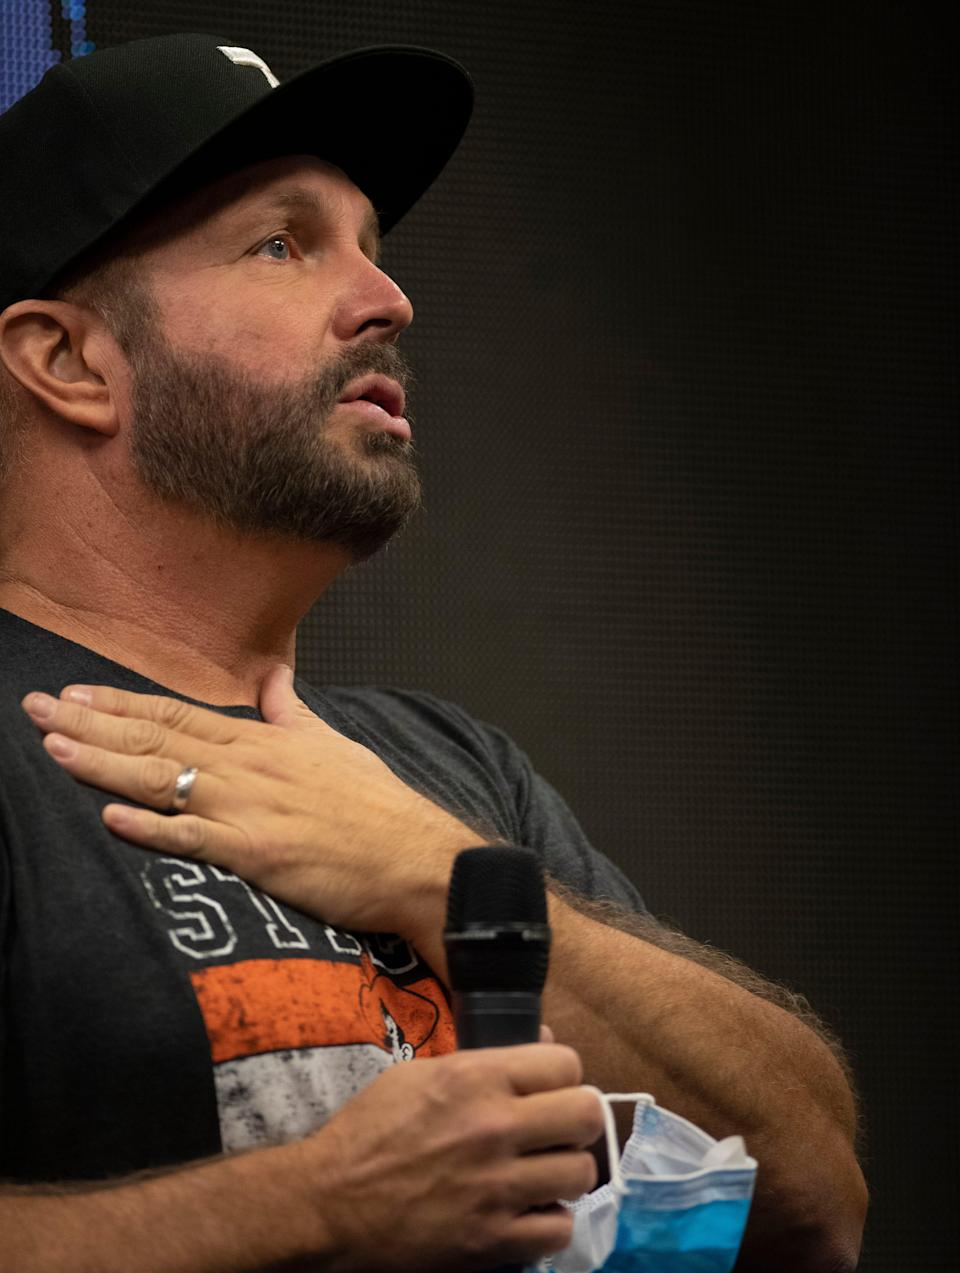 Garth Brooks holds a press conference ahead of his Saturday night concert at Nissan Stadium Friday, July 30, 2021 in Nashville, Tenn.